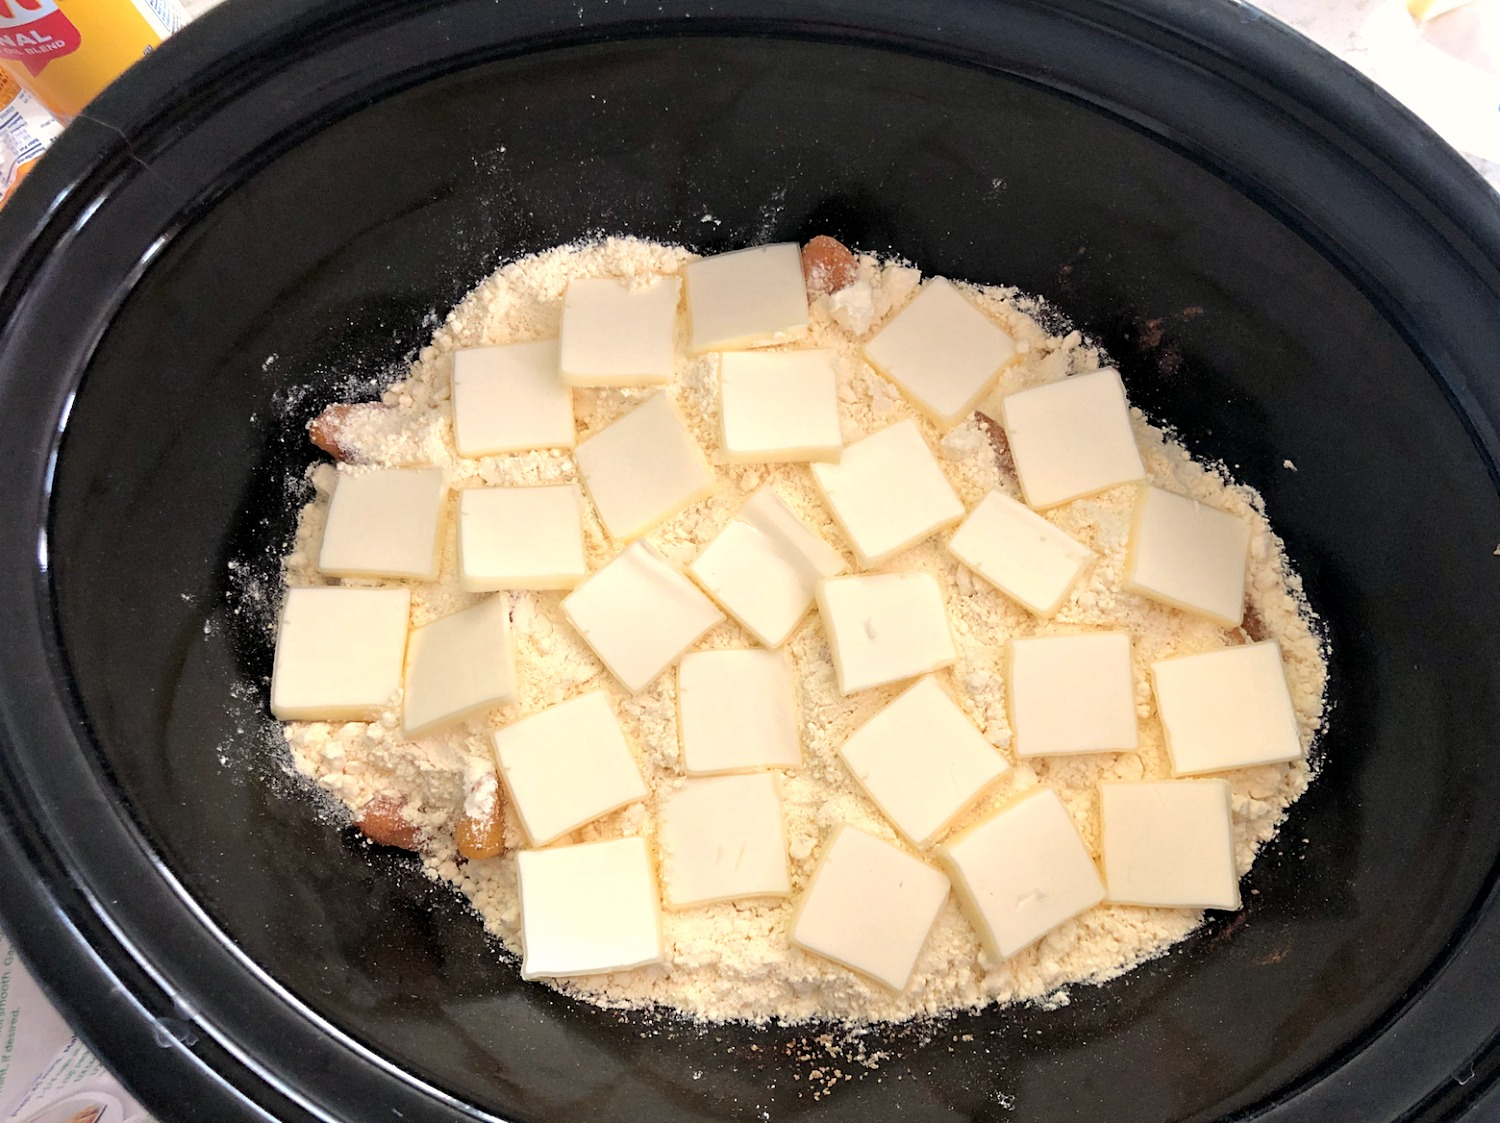 Unbaked Peach Cobbler in the crock pot topped with butter slices